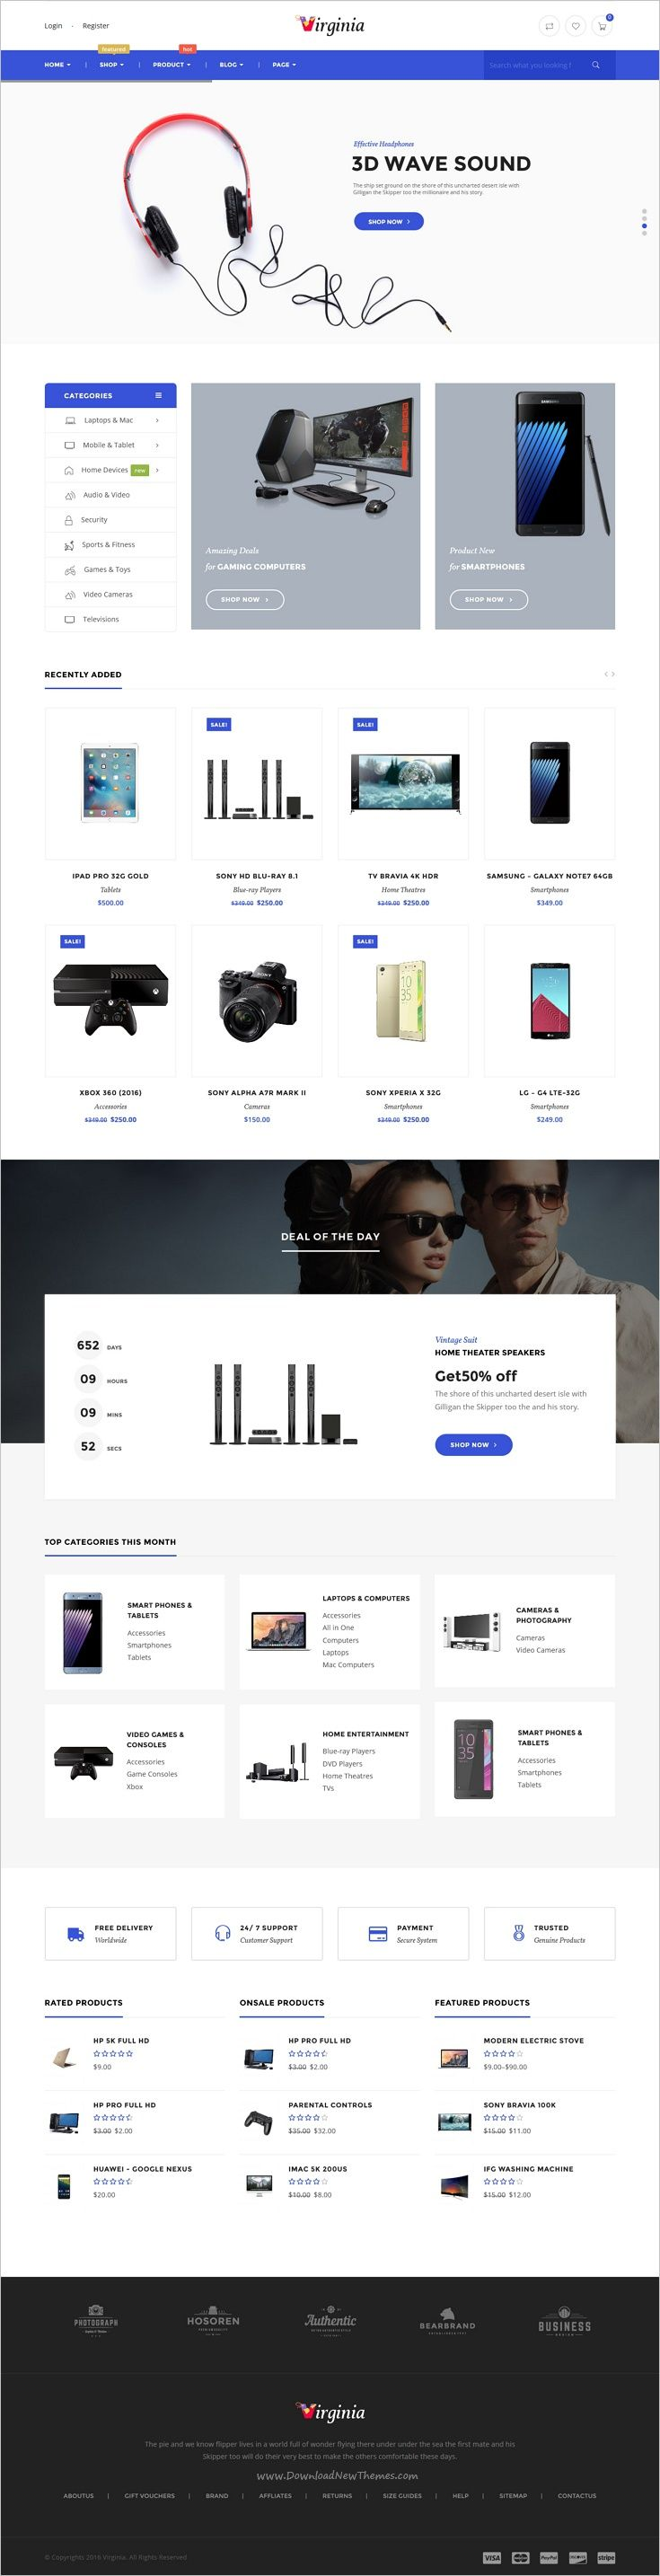 Virginia Is A Tidy And Responsive 5 In 1 Woocommerce Wordpress Template Suitable For Tech Sh Website Design Inspiration Web Design Blog Templates Wordpress